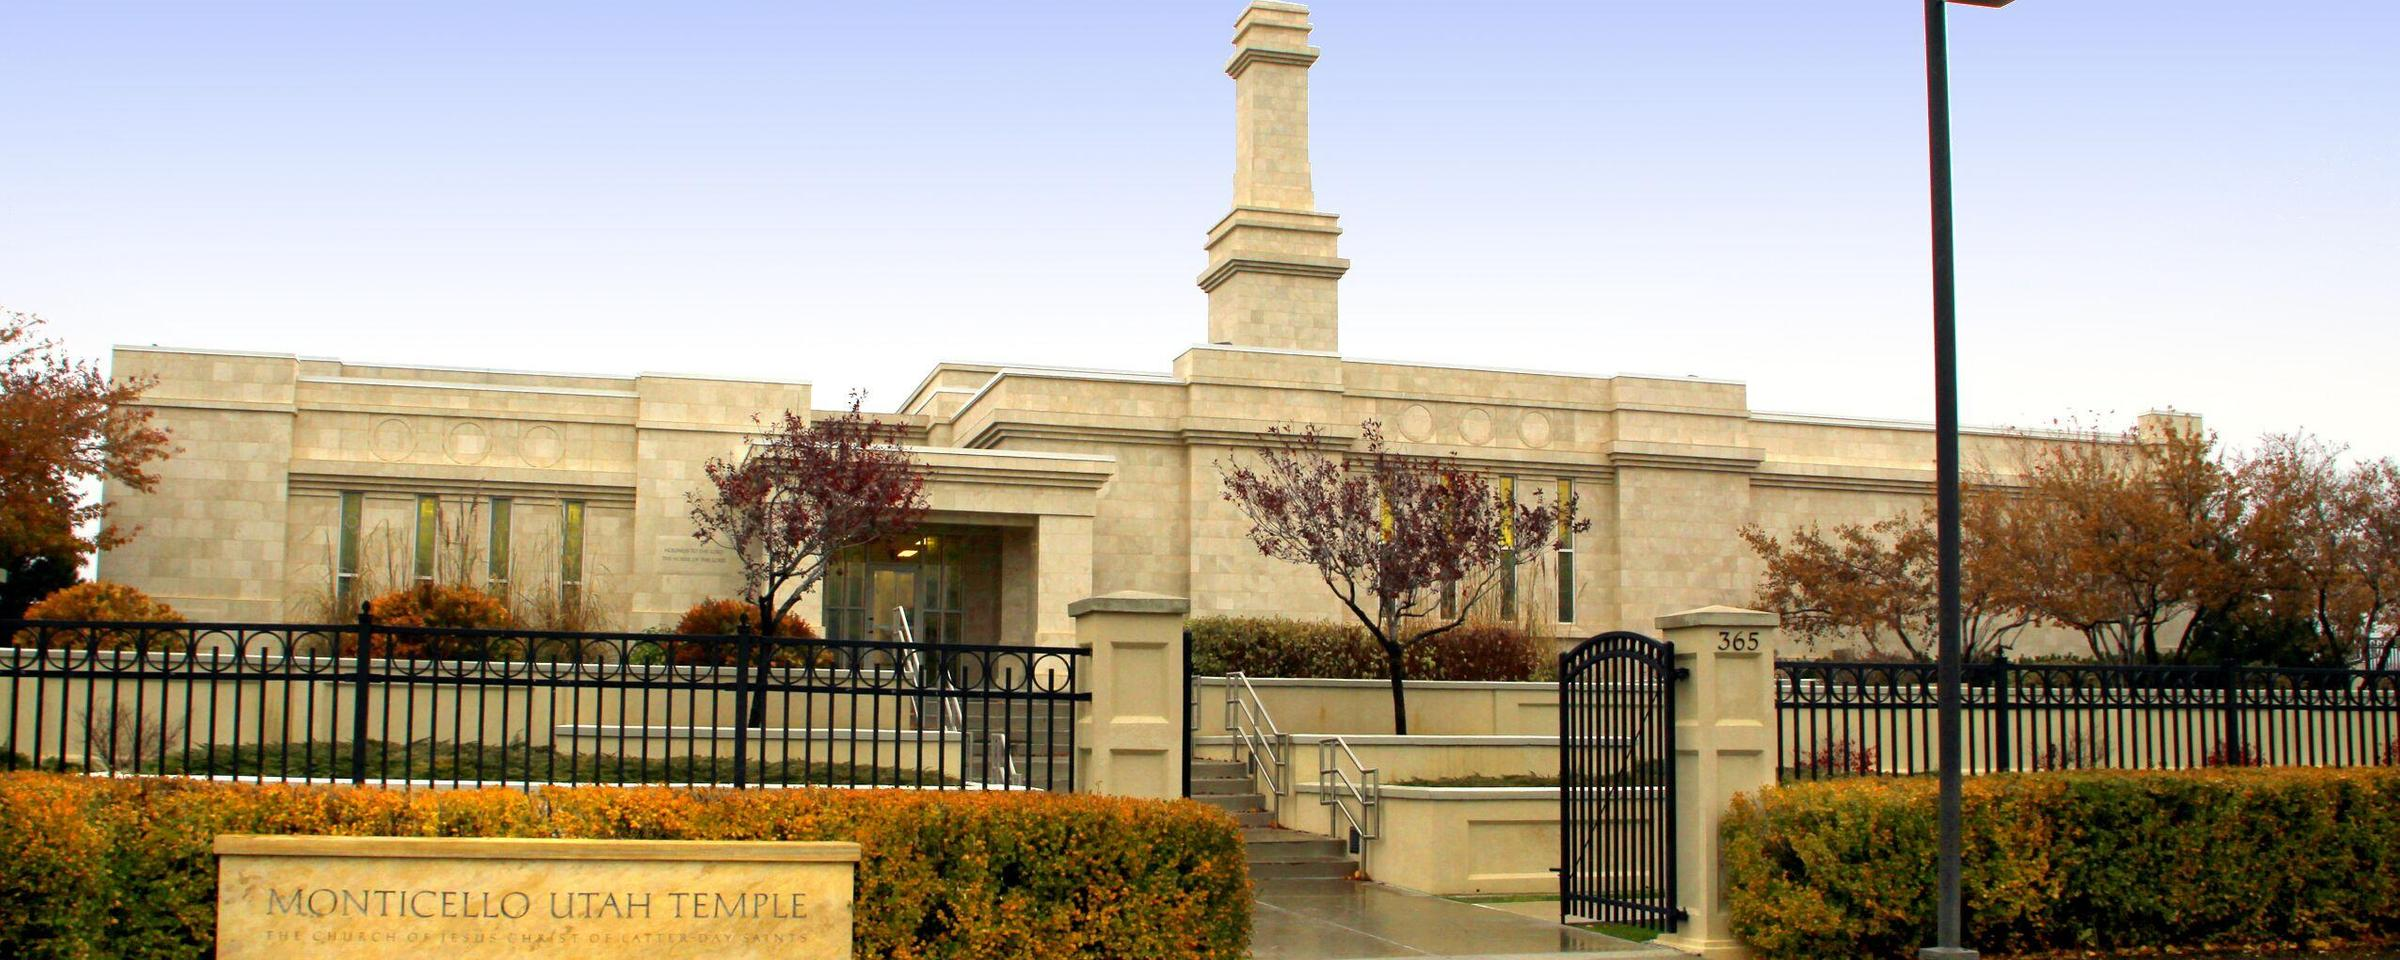 Monticello LDS Temple